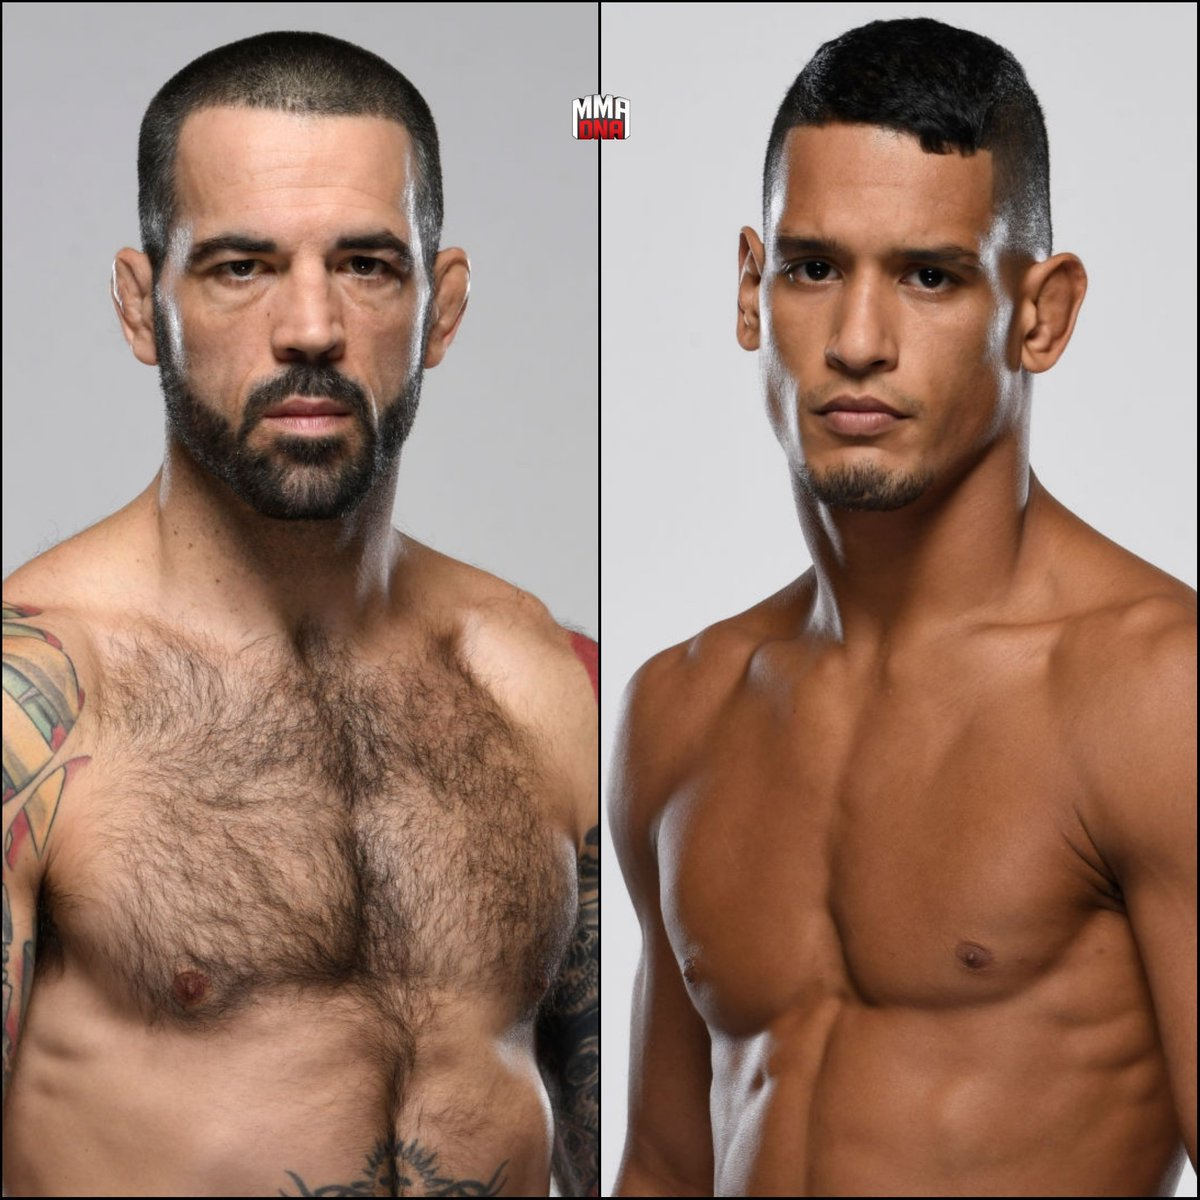 Matt Brown will fight Miguel Baeza at #UFConESPN8 in Columbus, Ohio. (Mar. 28, 2020). (per @DamonMartin/@MMAFighting) #UFC #UFCColumbus #MMA #UFCESPN